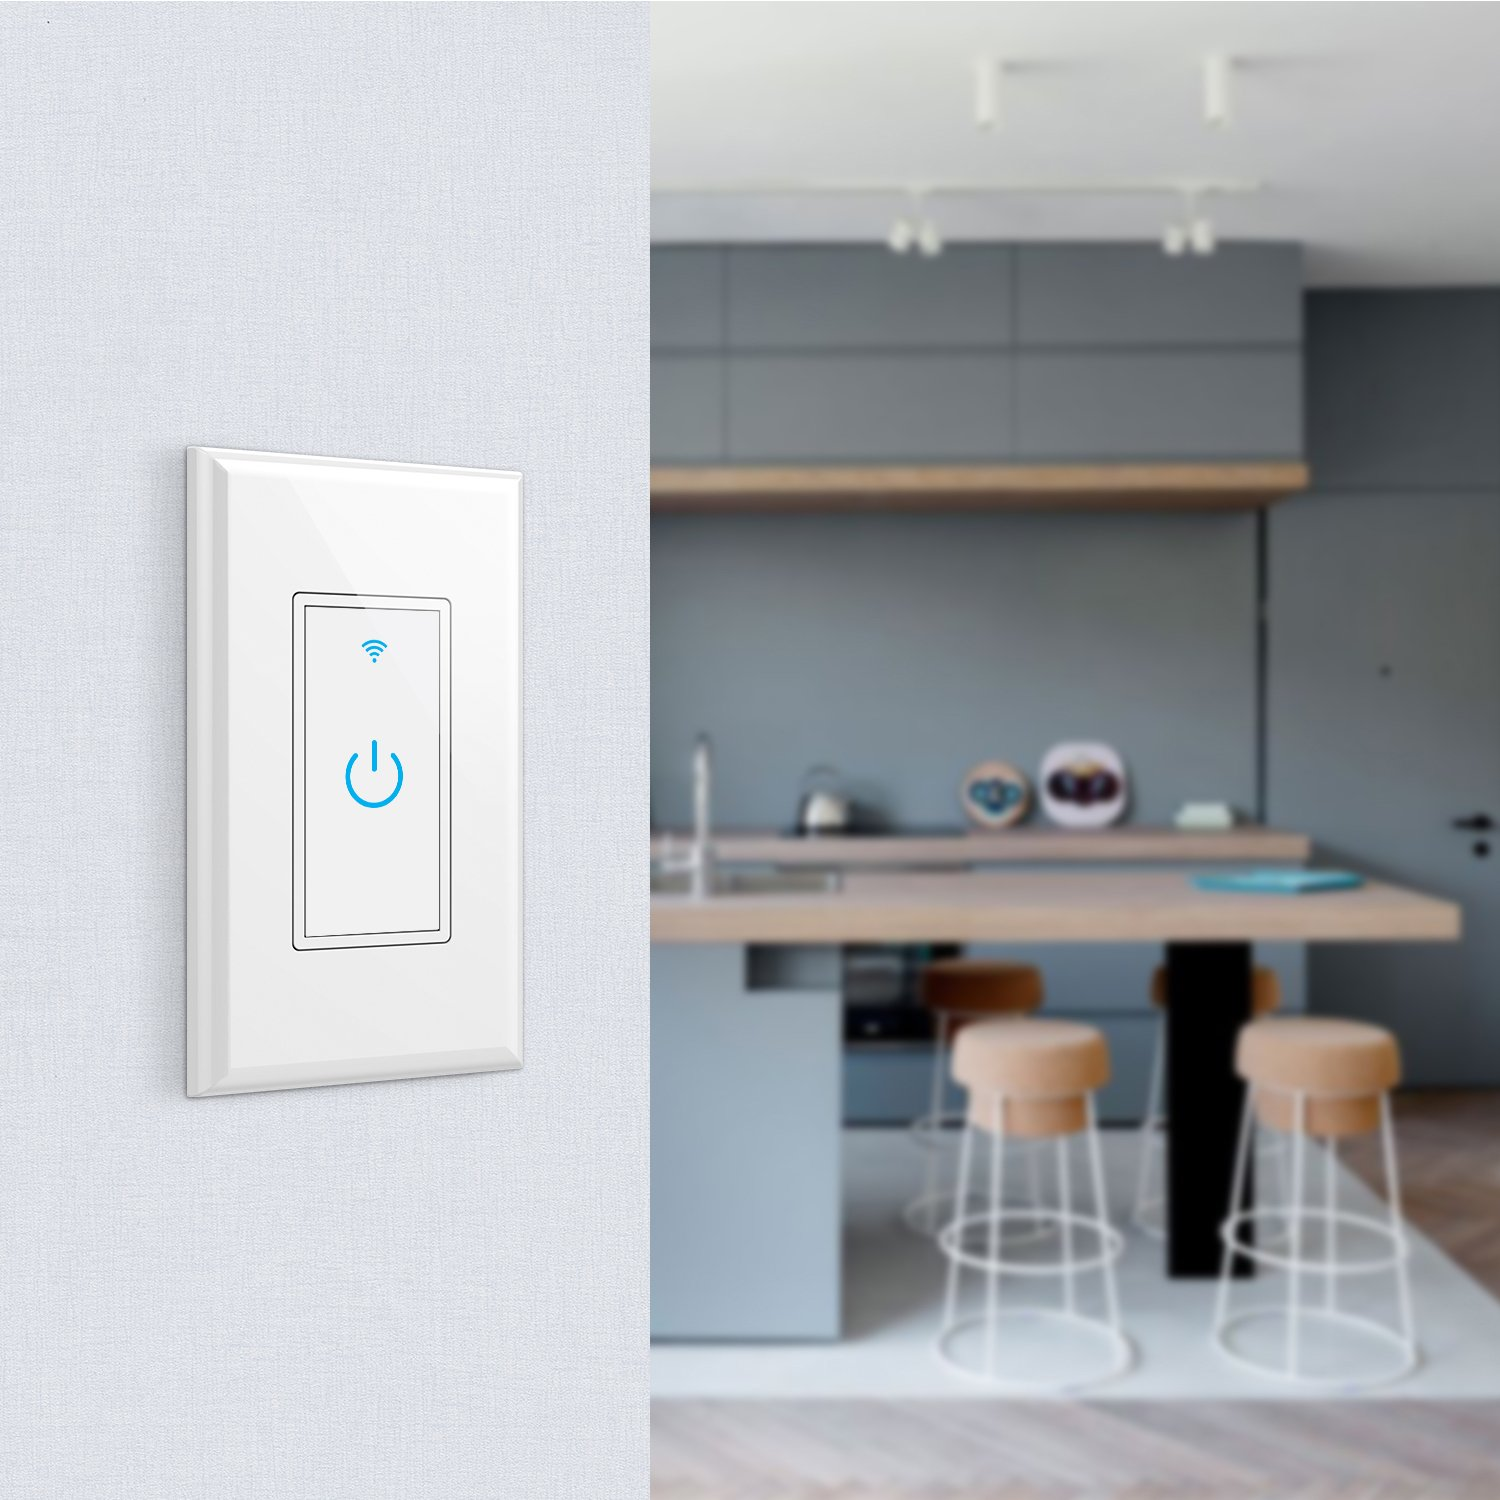 WiFi Smart Light Switch In-Wall,Phone Remote Control Wireless Switch No Hub Required,Timing Function, Automatic Control Your Fixtures From Anywhere,Compatible with Amazon Alexa,Overload Protection 15A by NewRice (Image #5)